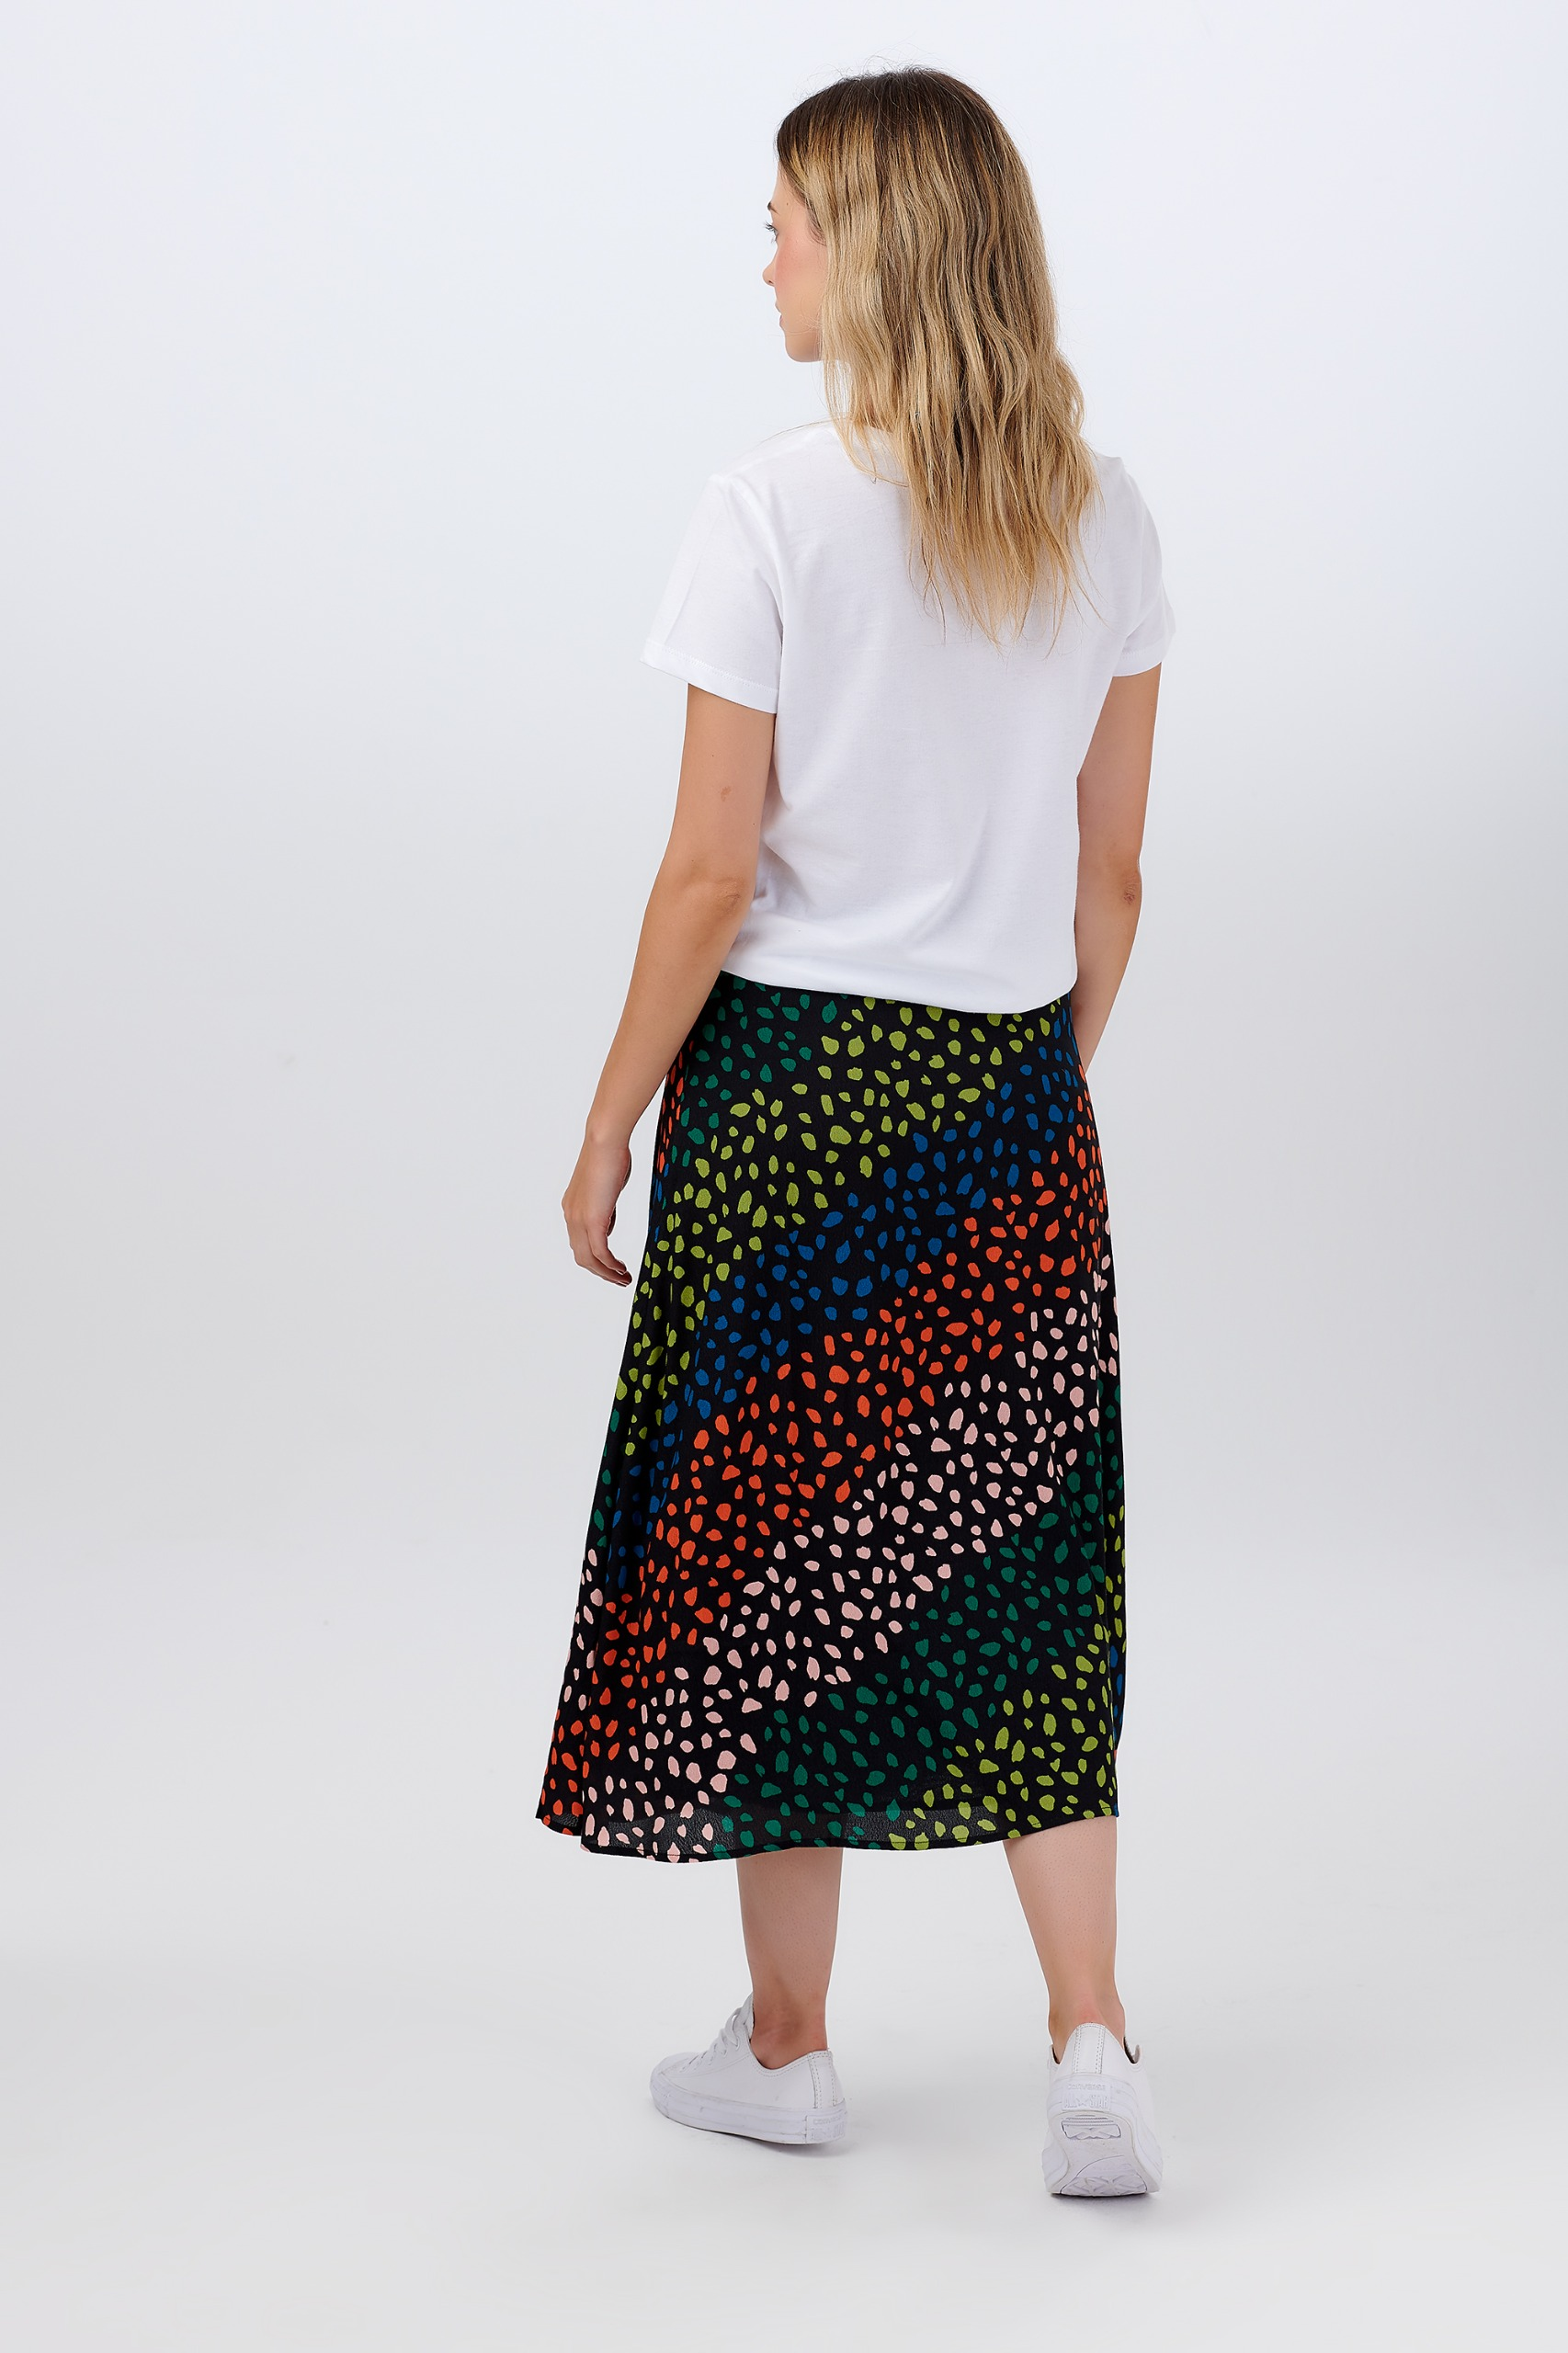 Sugarhill Adelia sea glass print skirt